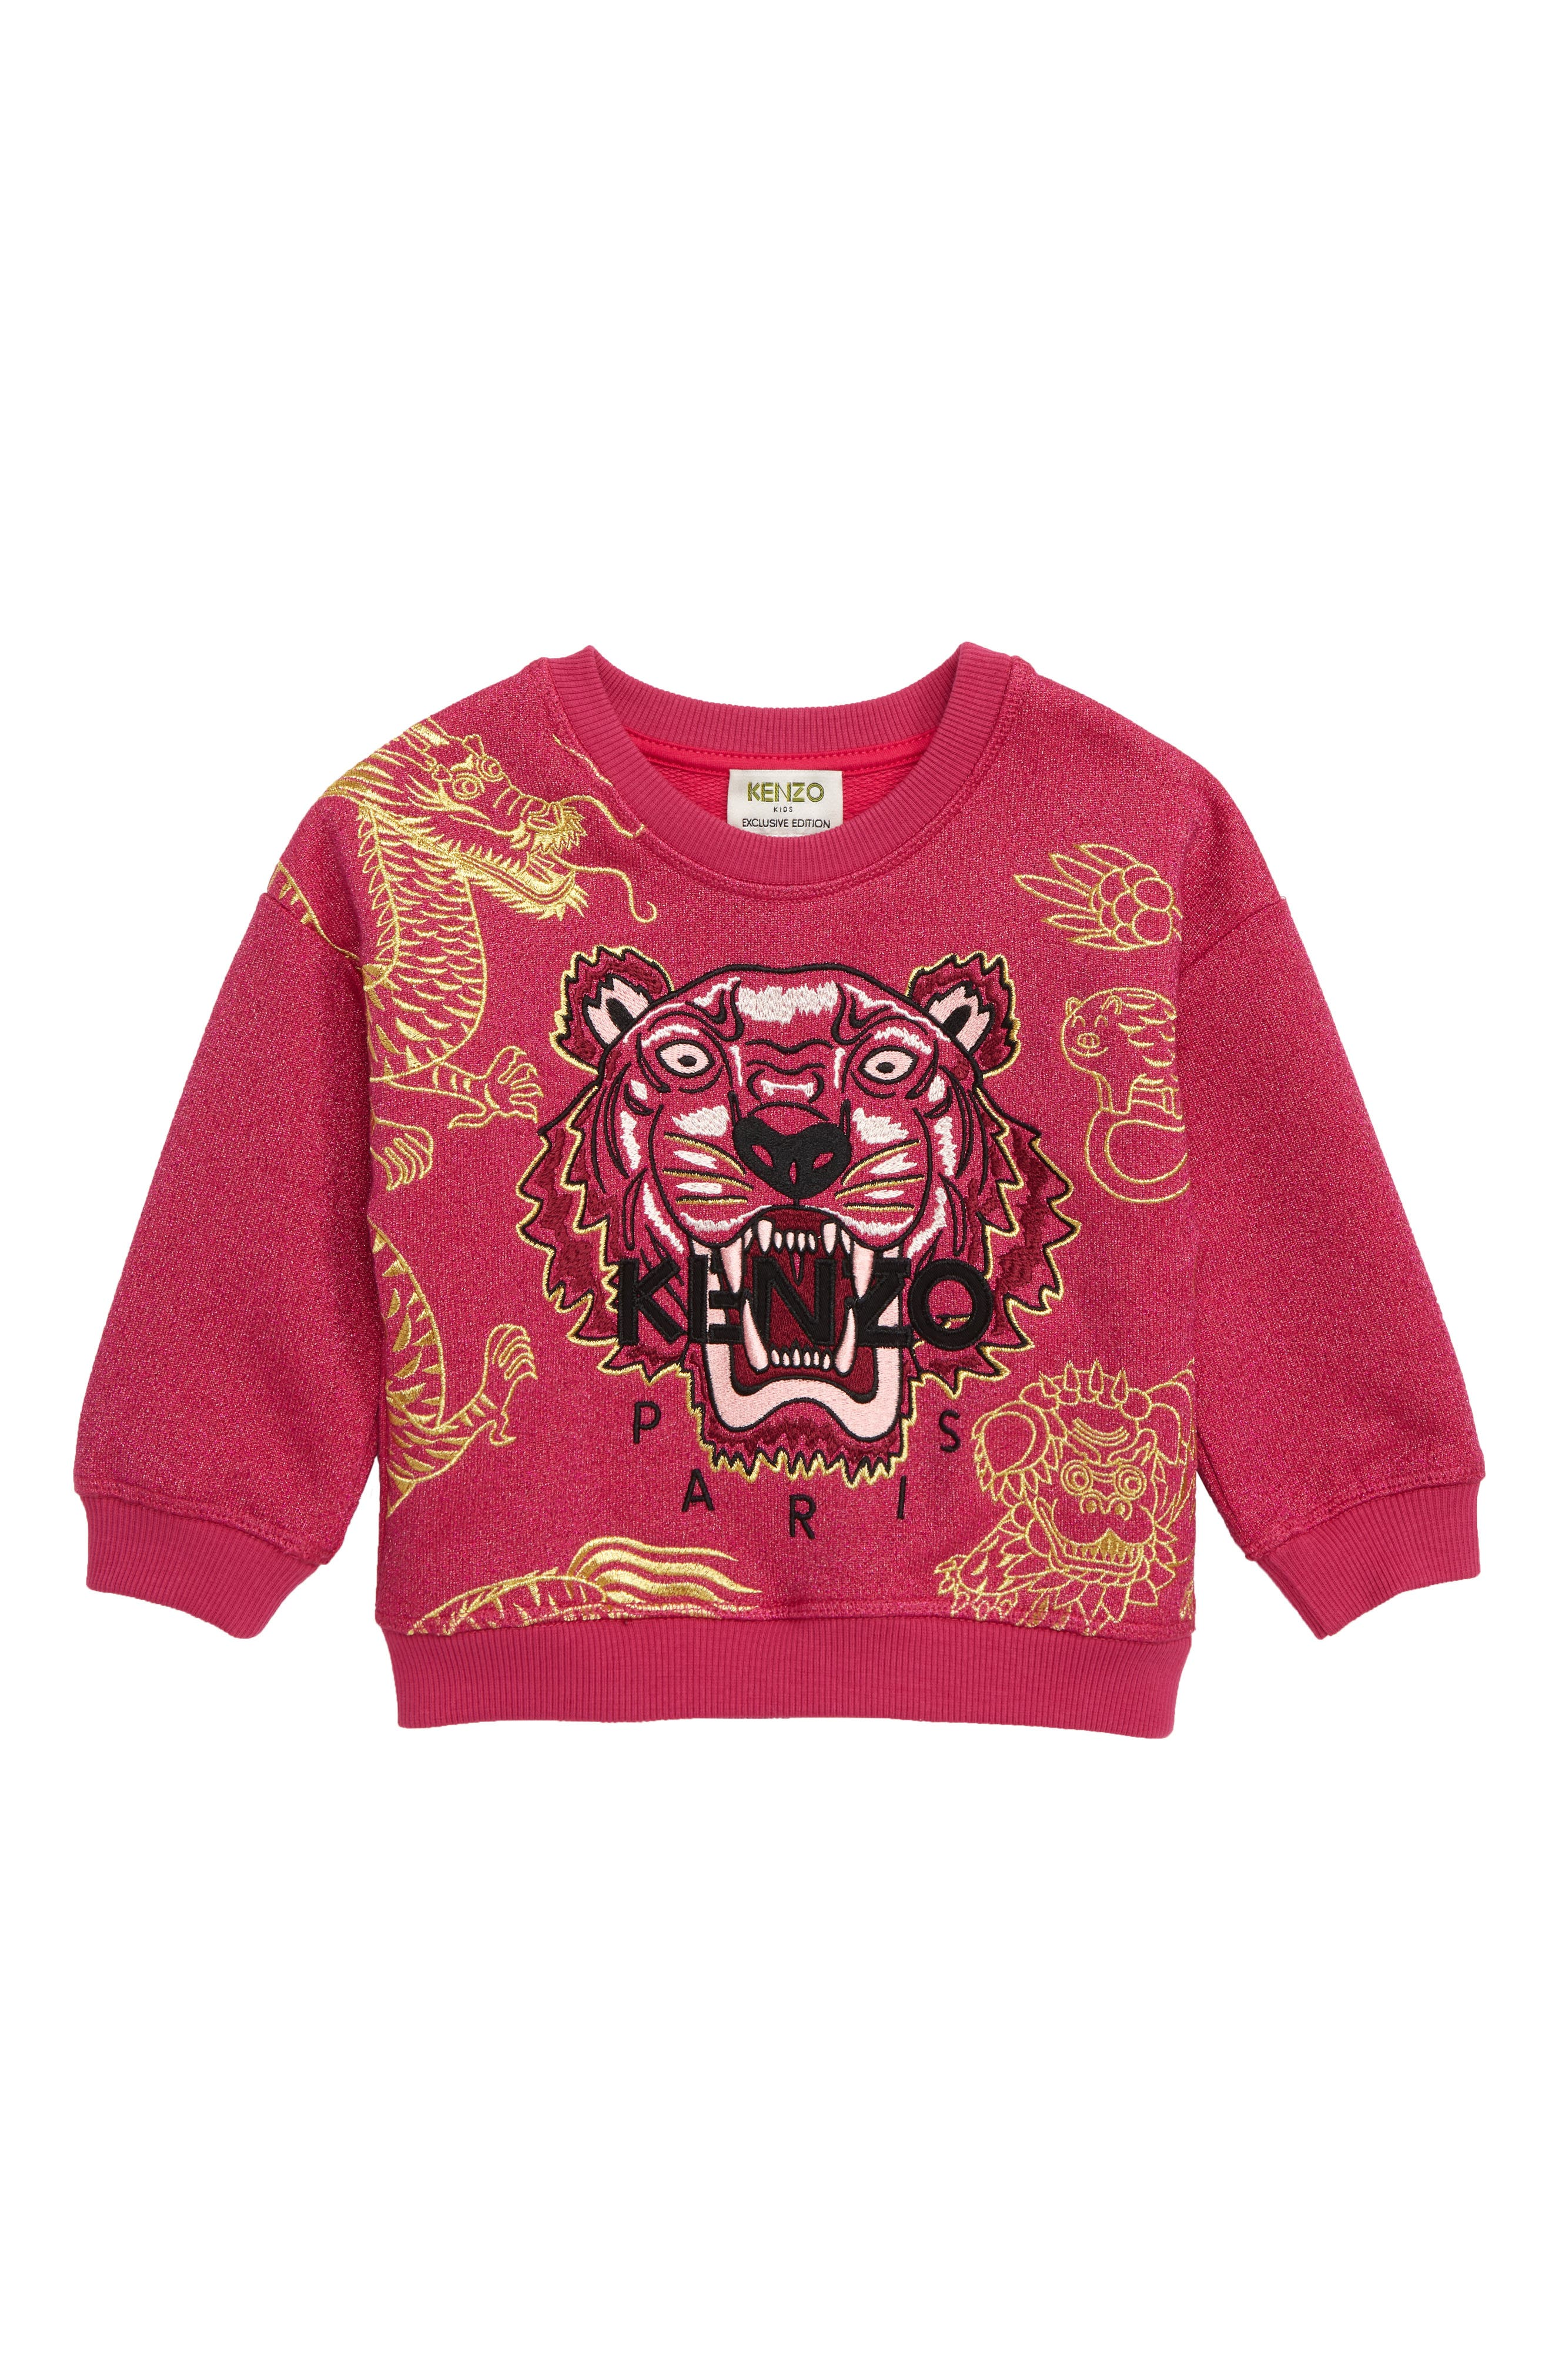 Girls Kenzo Year Of The Pig Glitter Sweatshirt Size 8Y  Pink